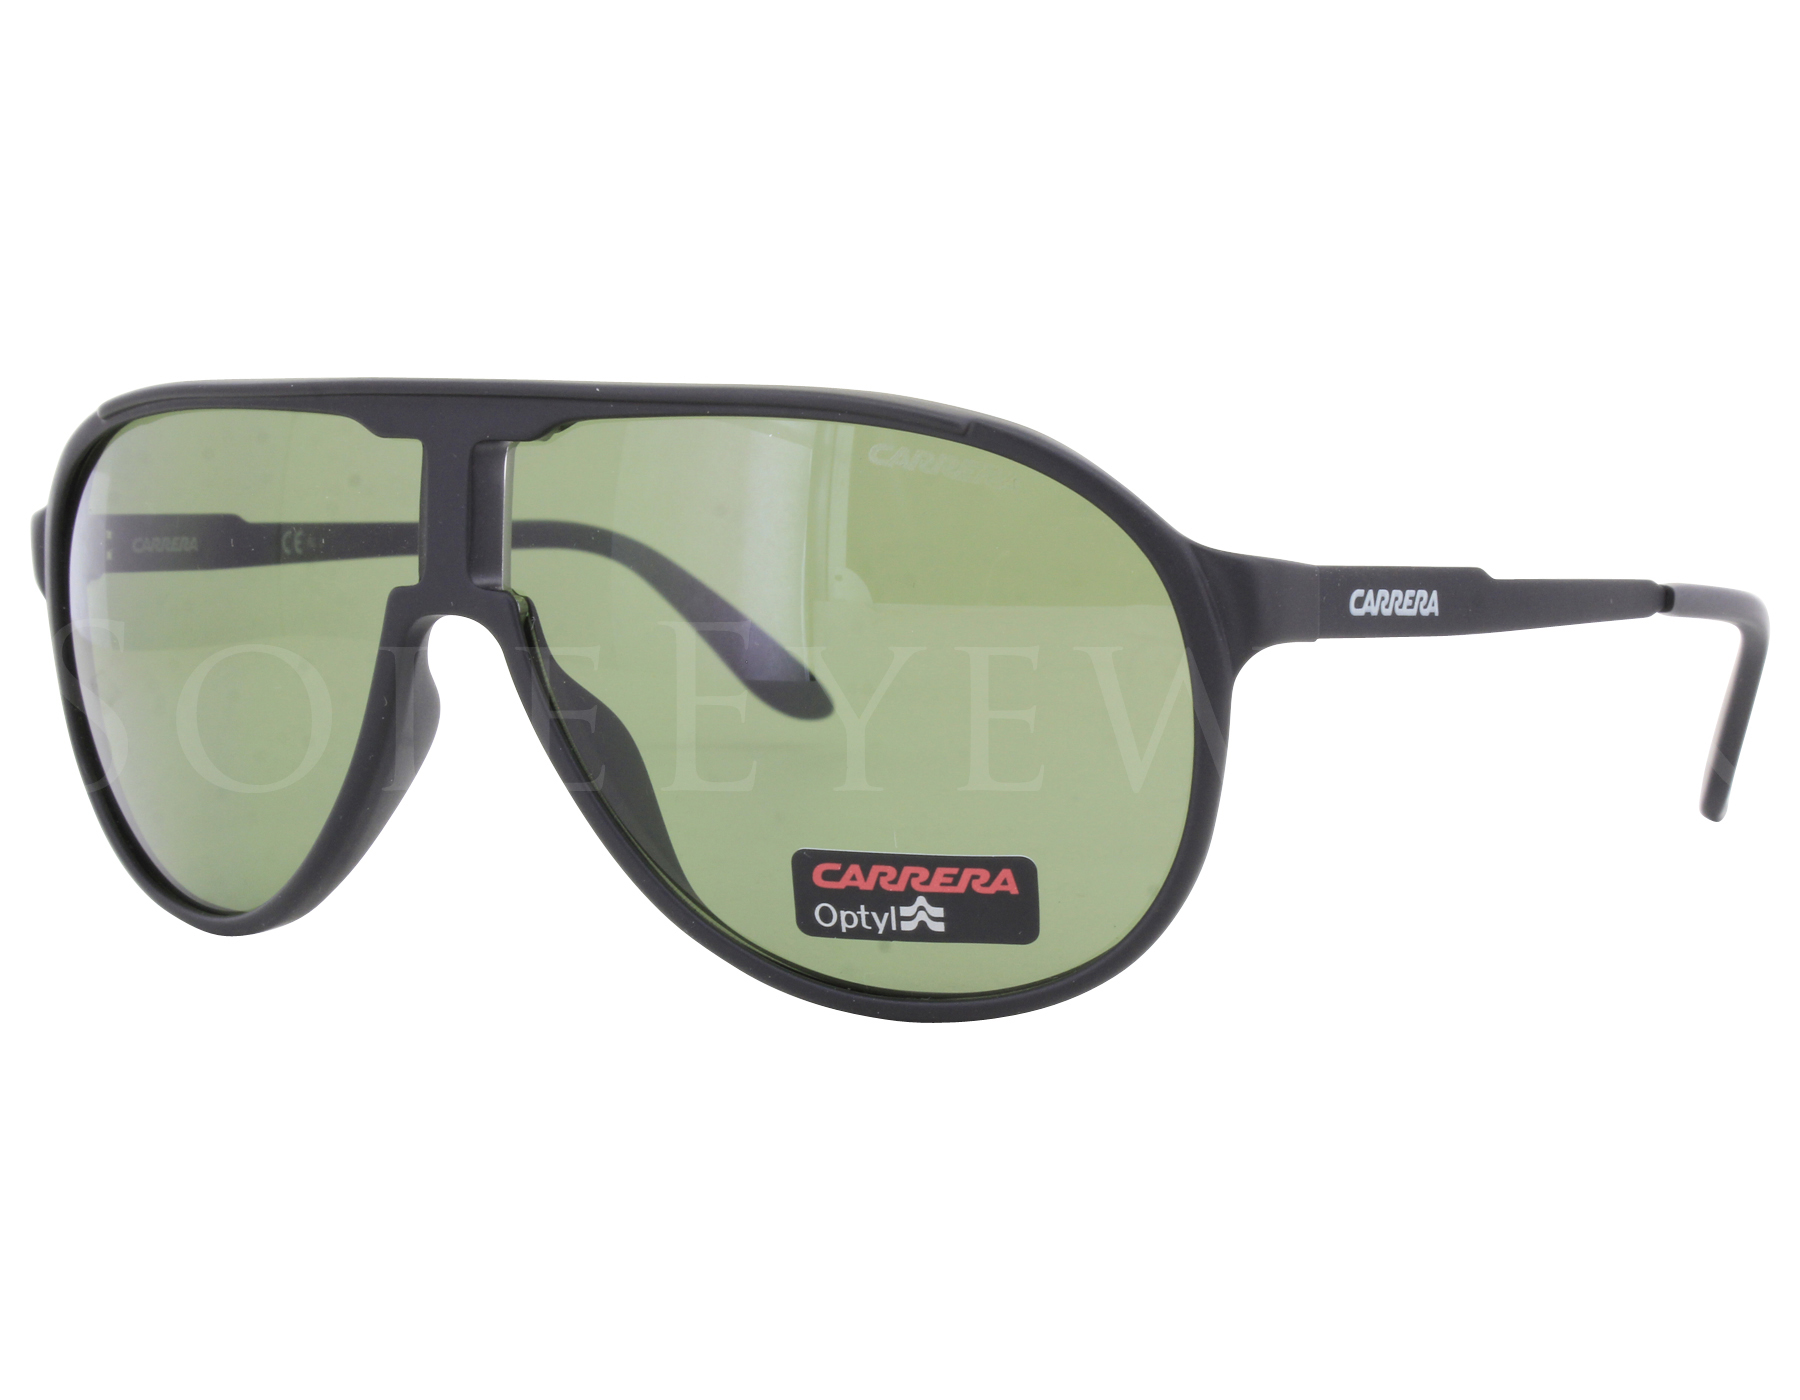 ae8d78c338 Details about NEW Carrera CHAMPION GUYDJ 62mm Matte Black / Green Sunglasses